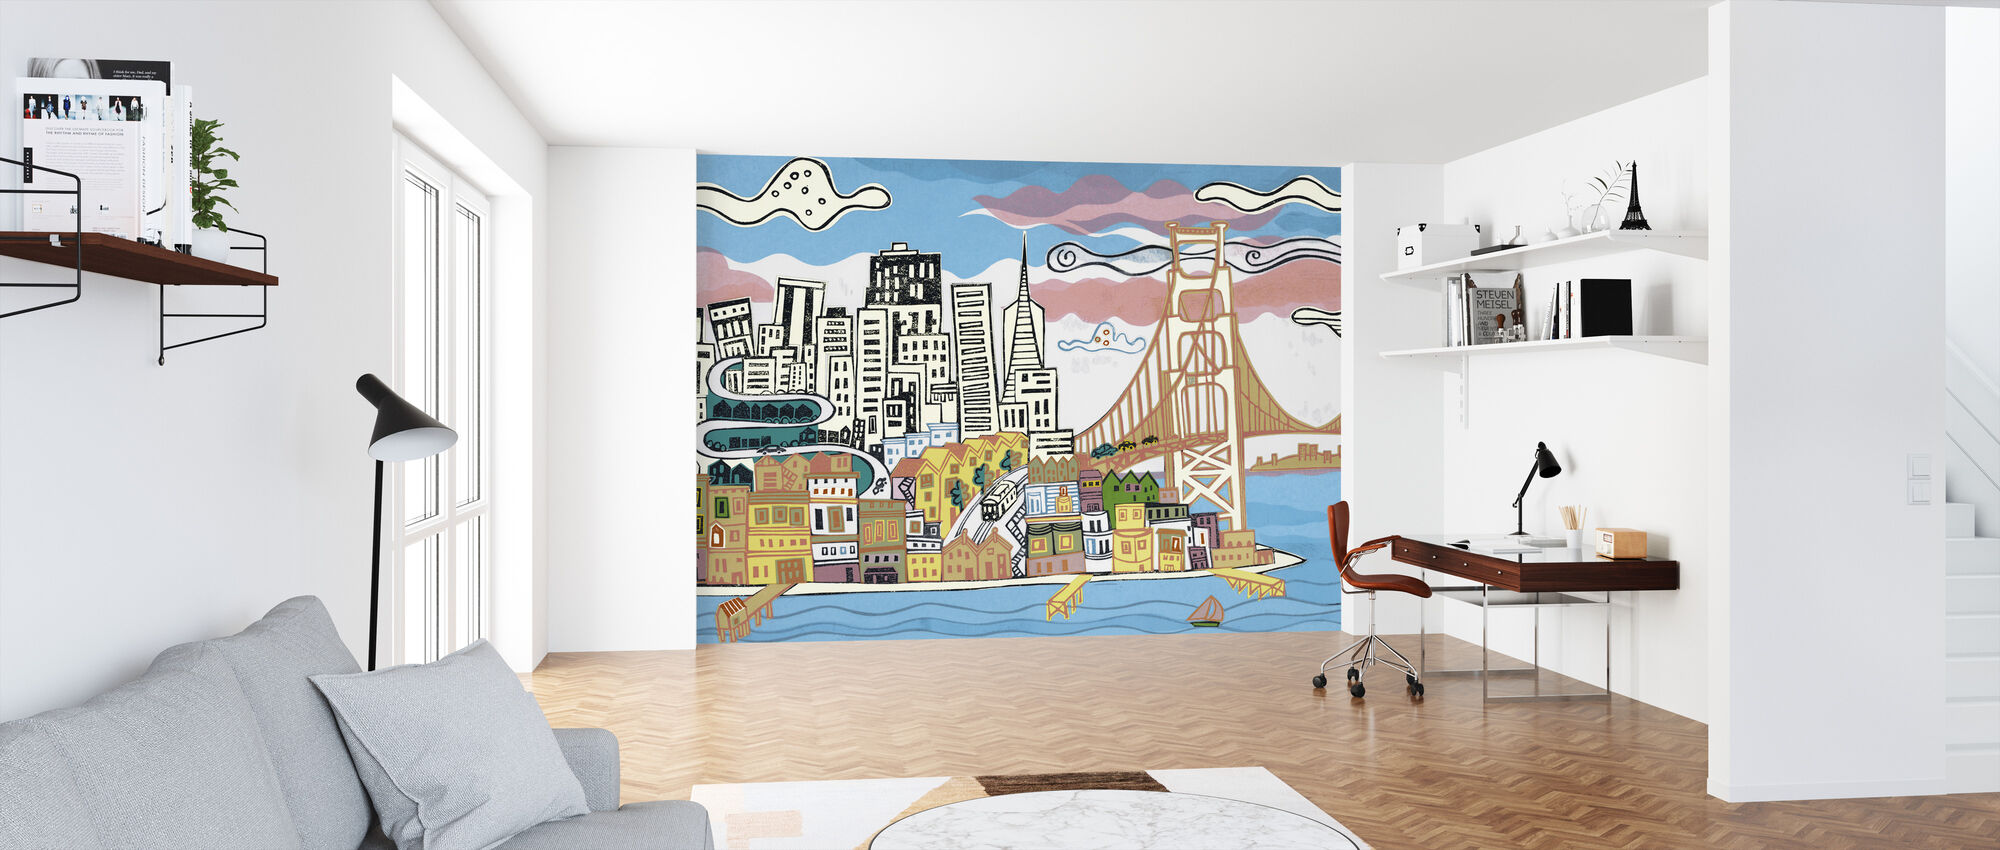 San Francisco Bay - Wallpaper - Office